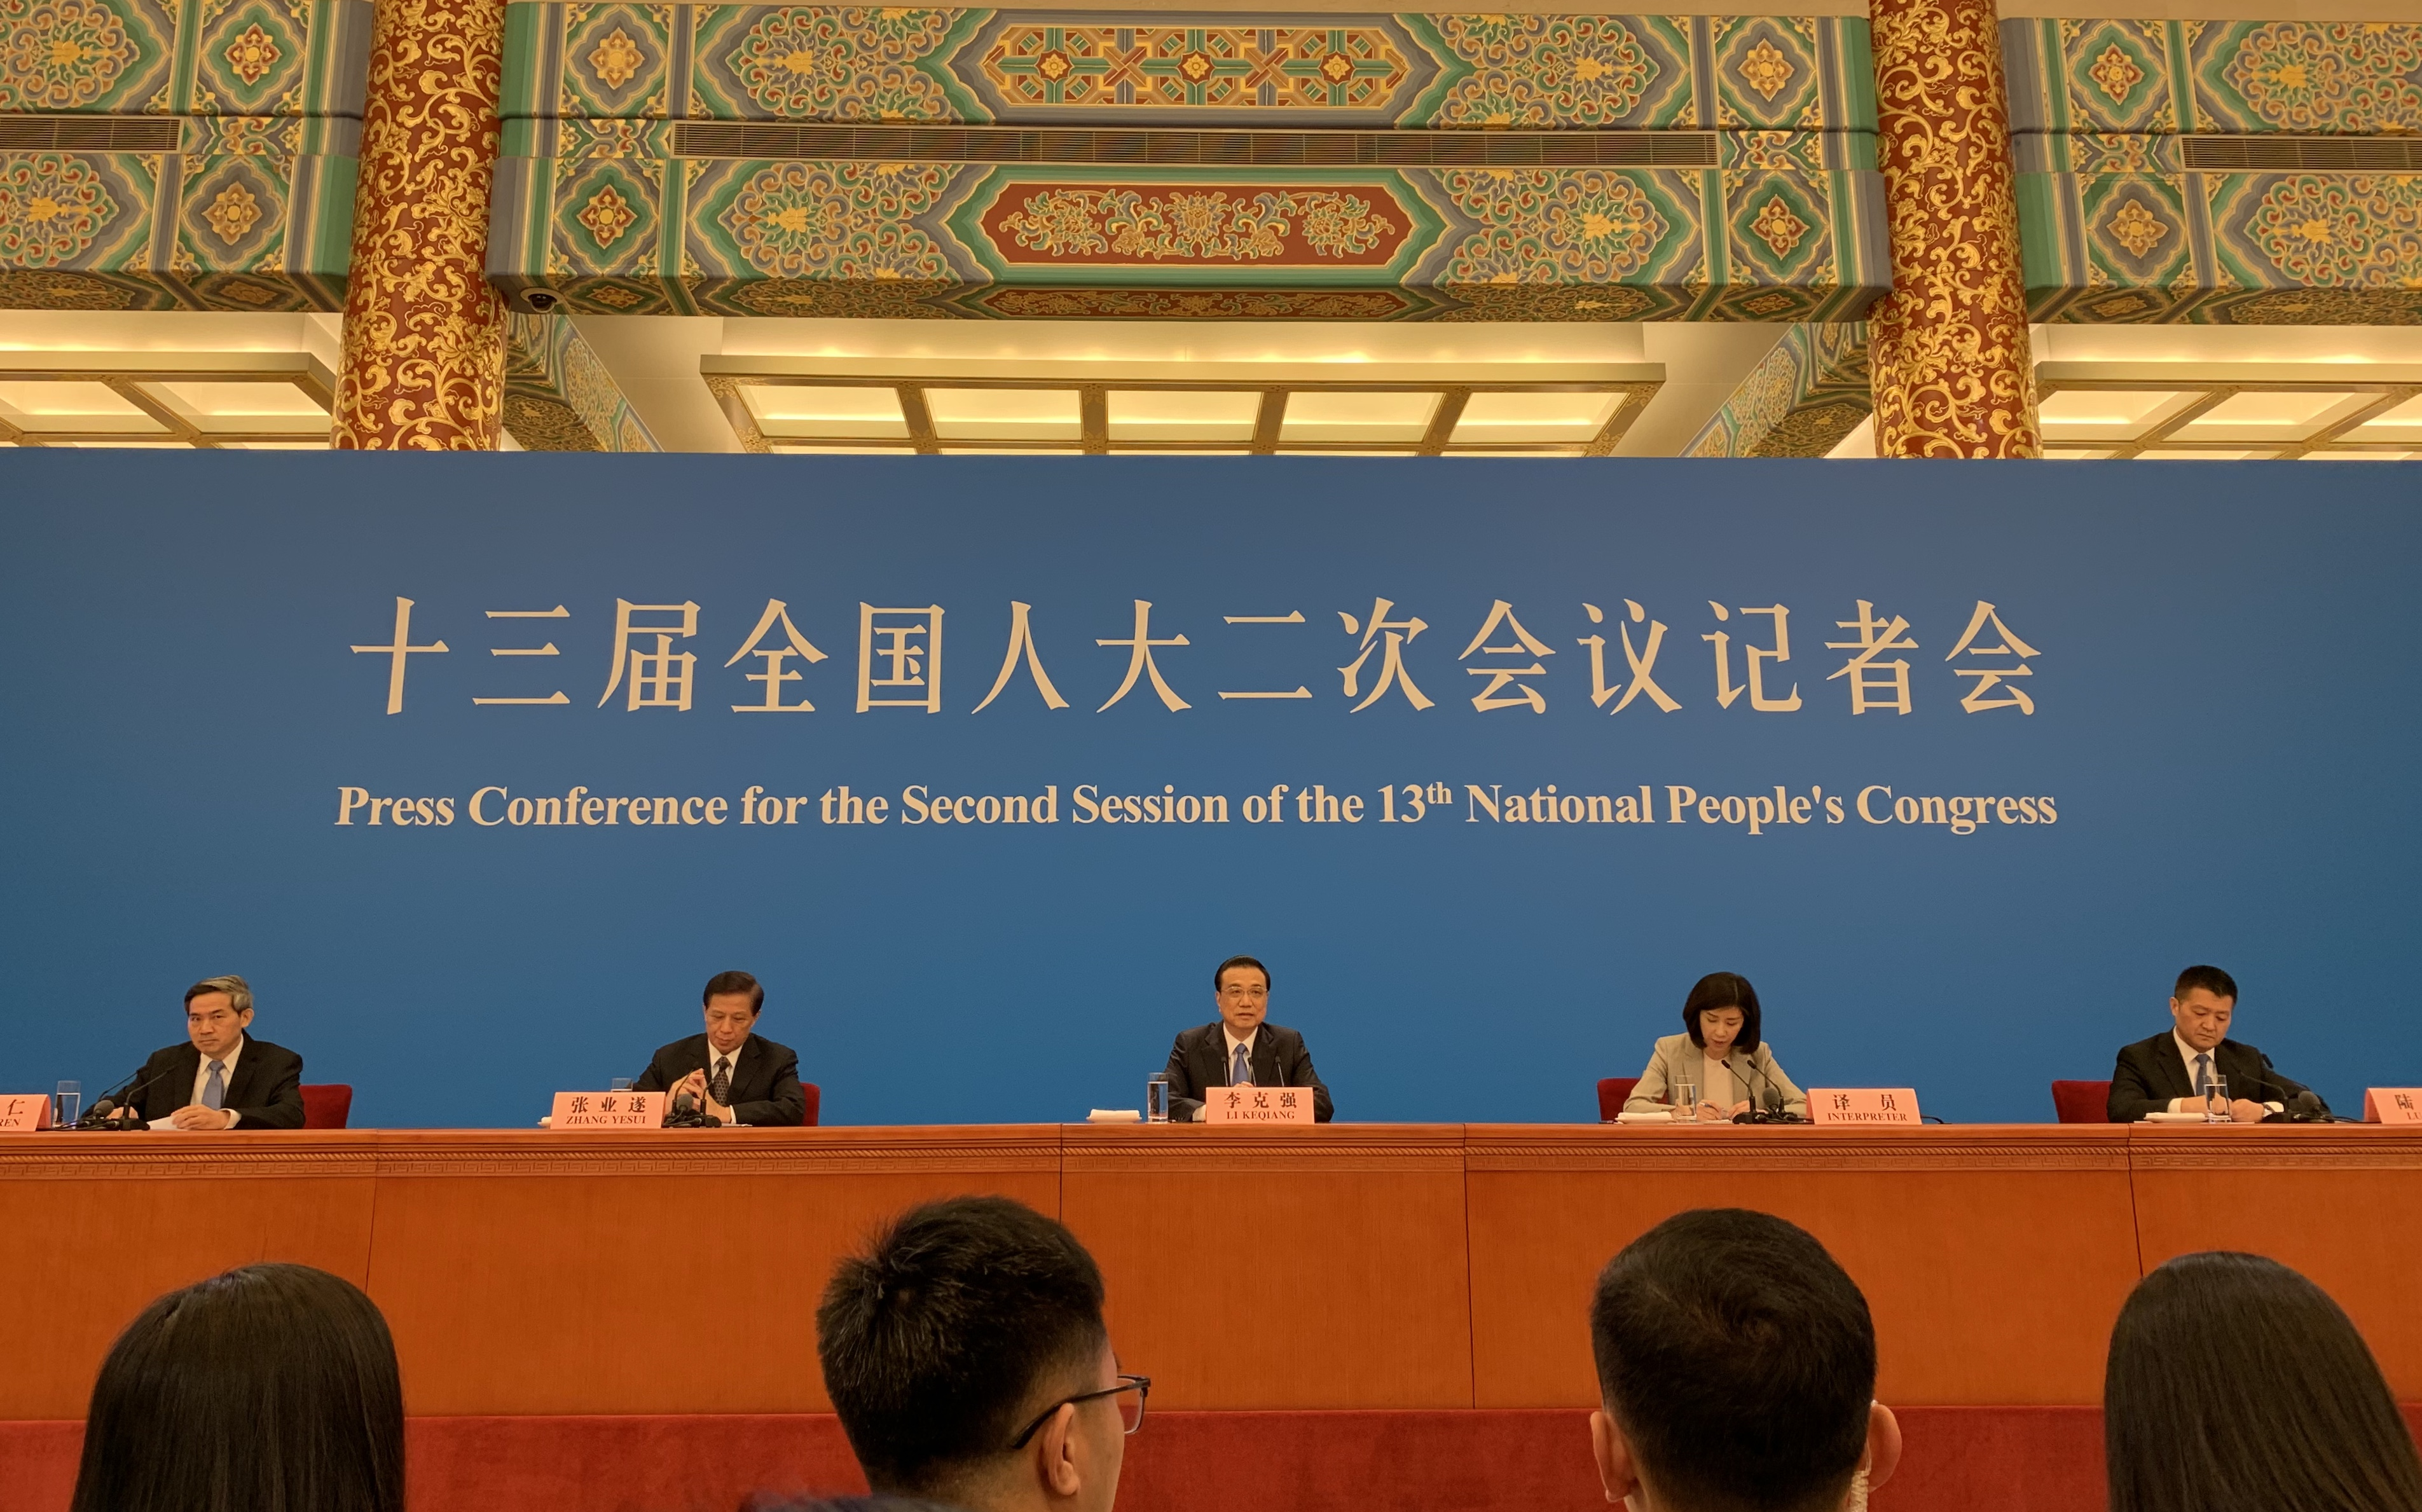 Highlights of Chinese Premier's press conference